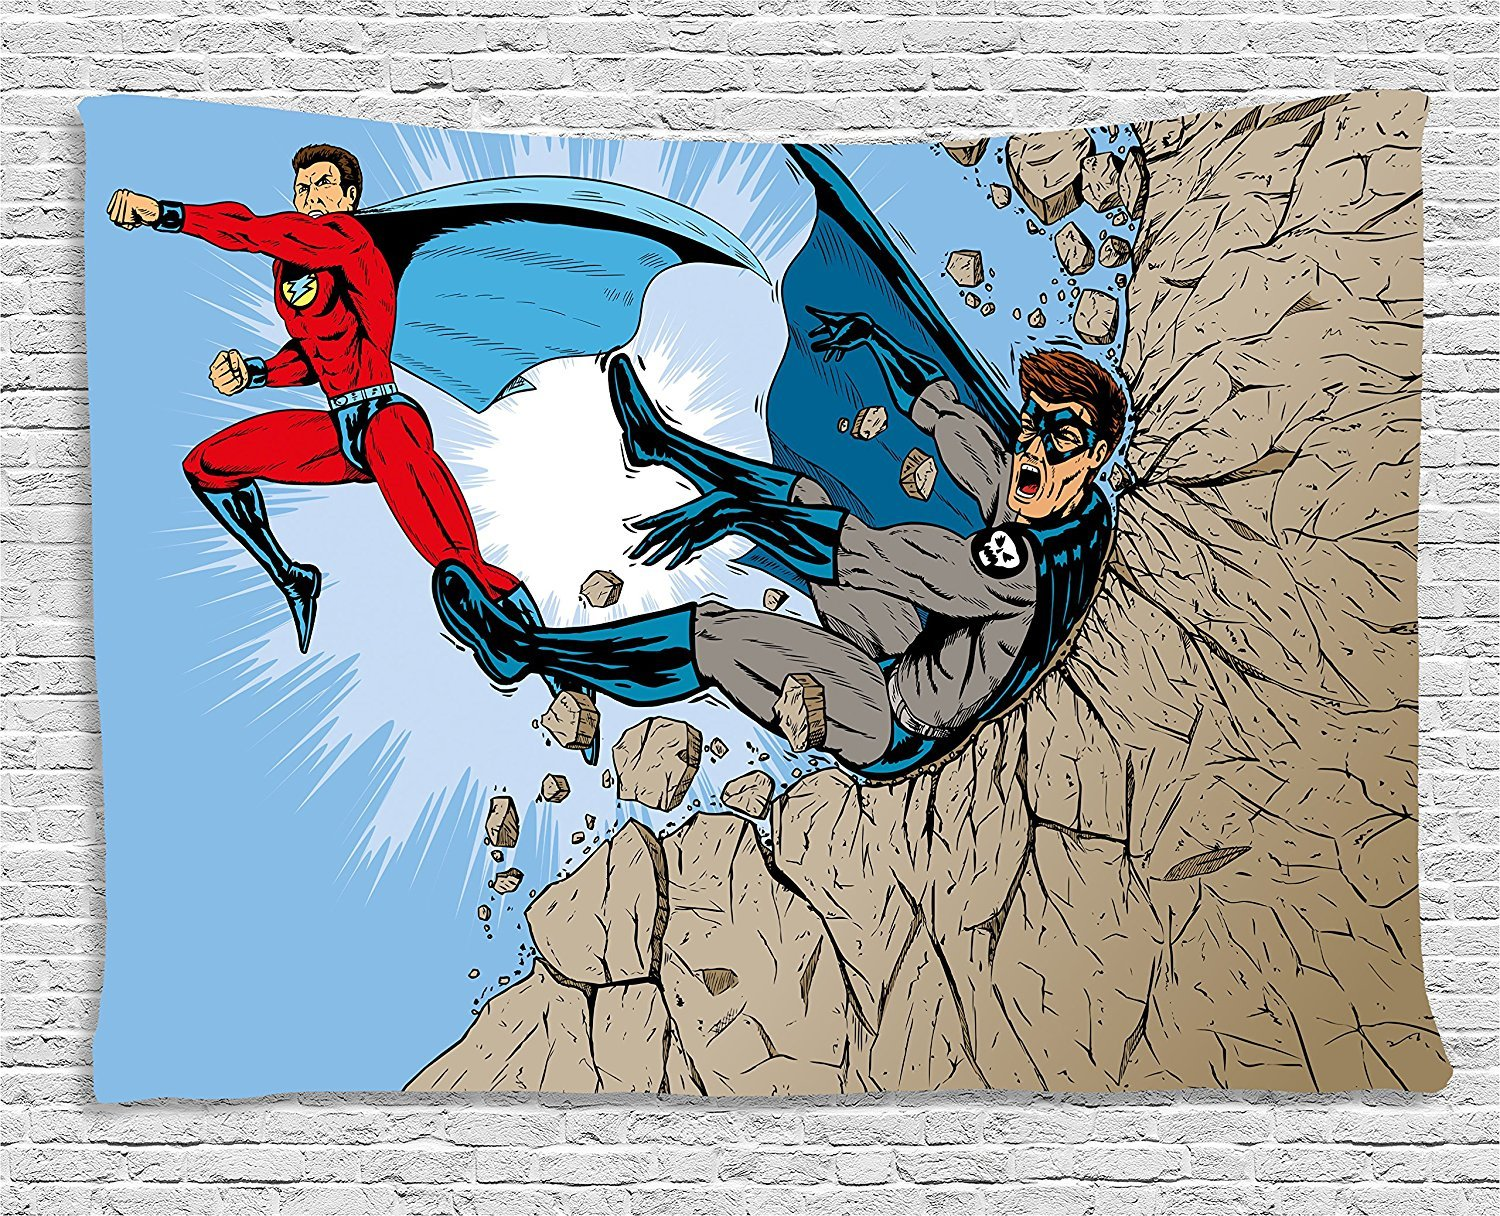 asddcdfdd Superhero Tapestry, Battle Fist Fight between Hero and Villain on the Rocks Punching Kicking Cartoon, Wall Hanging for Bedroom Living Room Dorm, 80 W X 60 L Inches, Multicolor